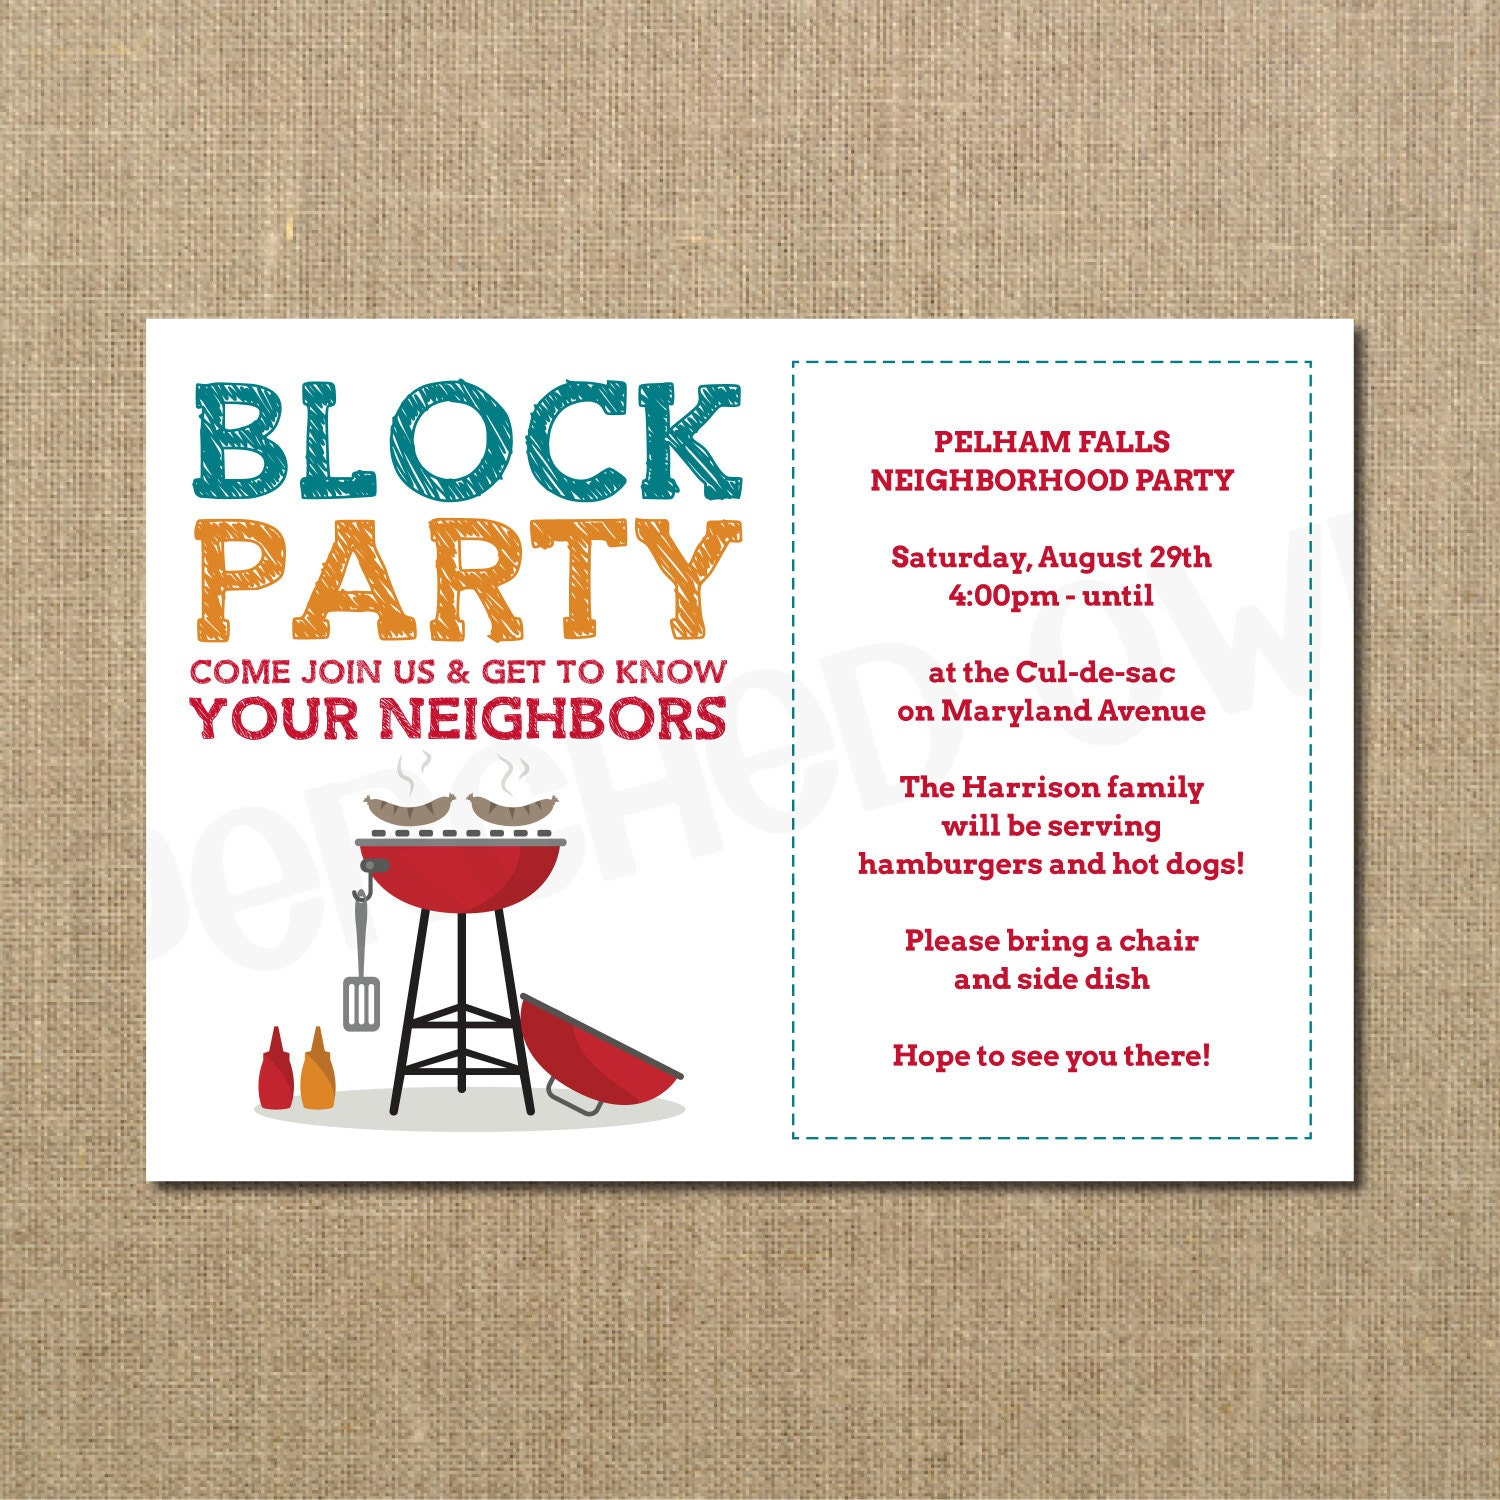 Neighborhood block party cookout invitation grilling out for Block party template flyers free